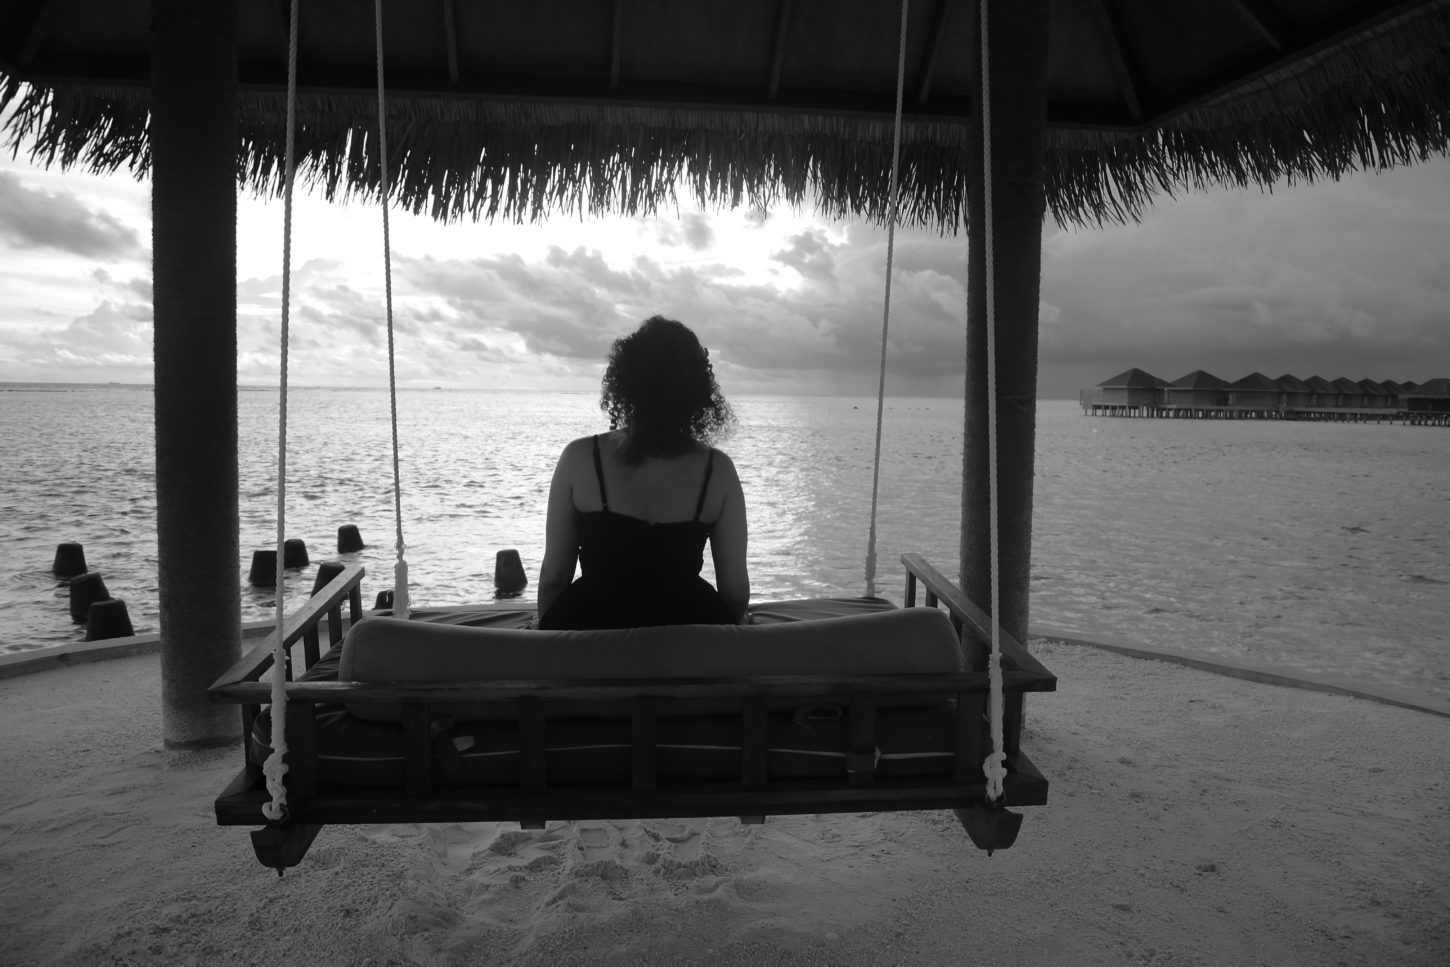 Time stands still in the Maldives